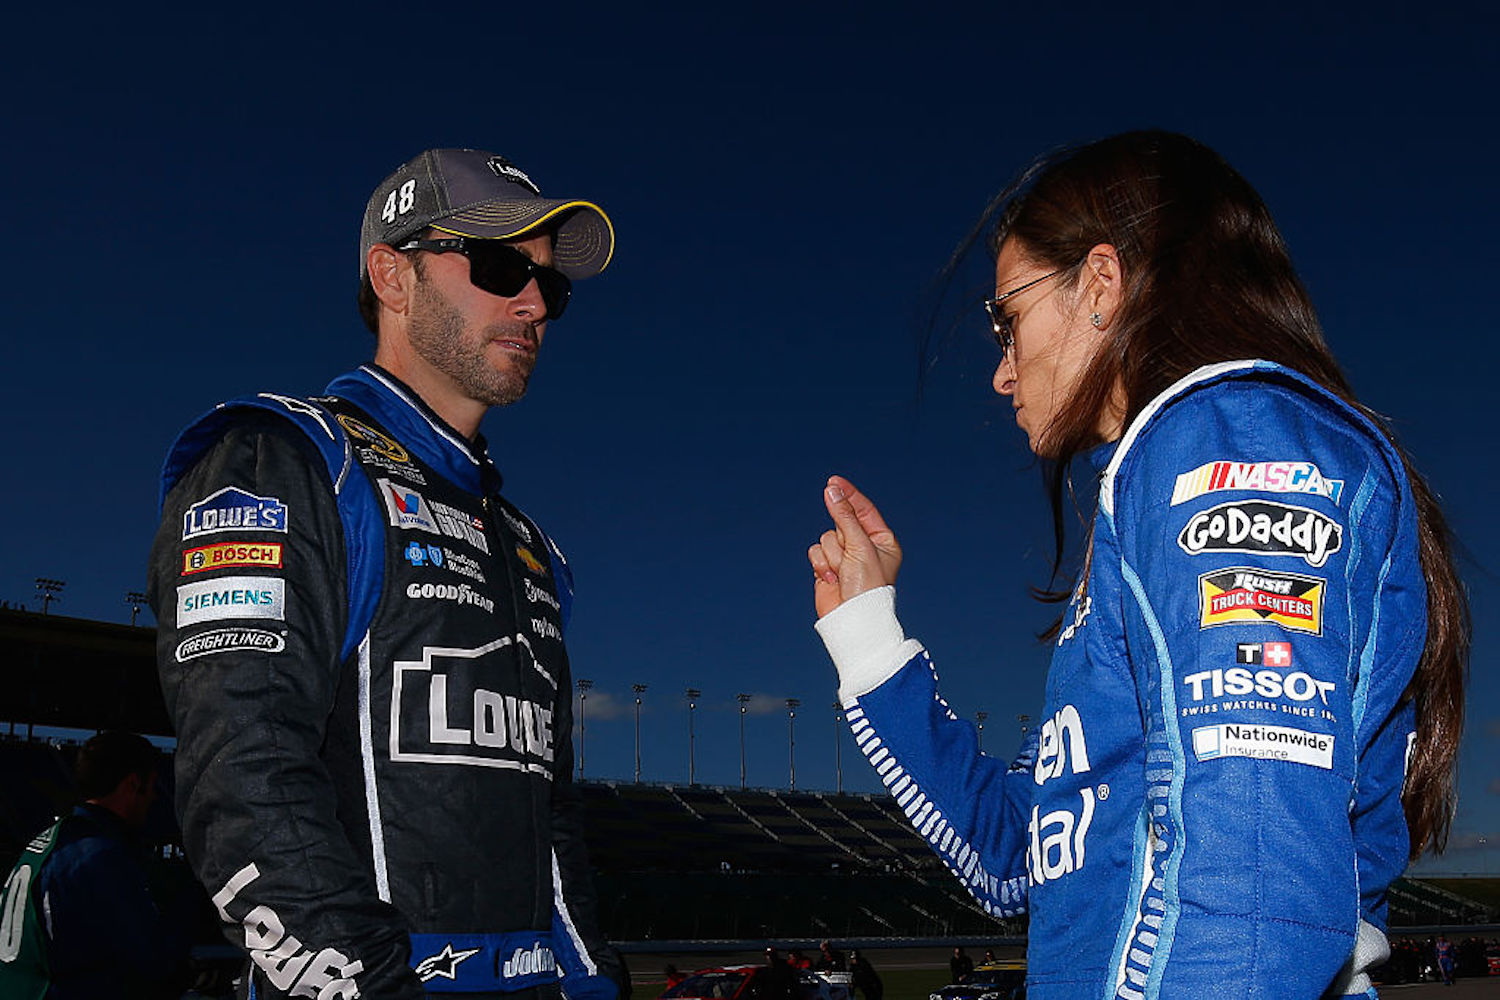 NASCAR legend Jimmie Johnson has announced his retirement from racing, but not before offering some wise advice to Danica Patrick.